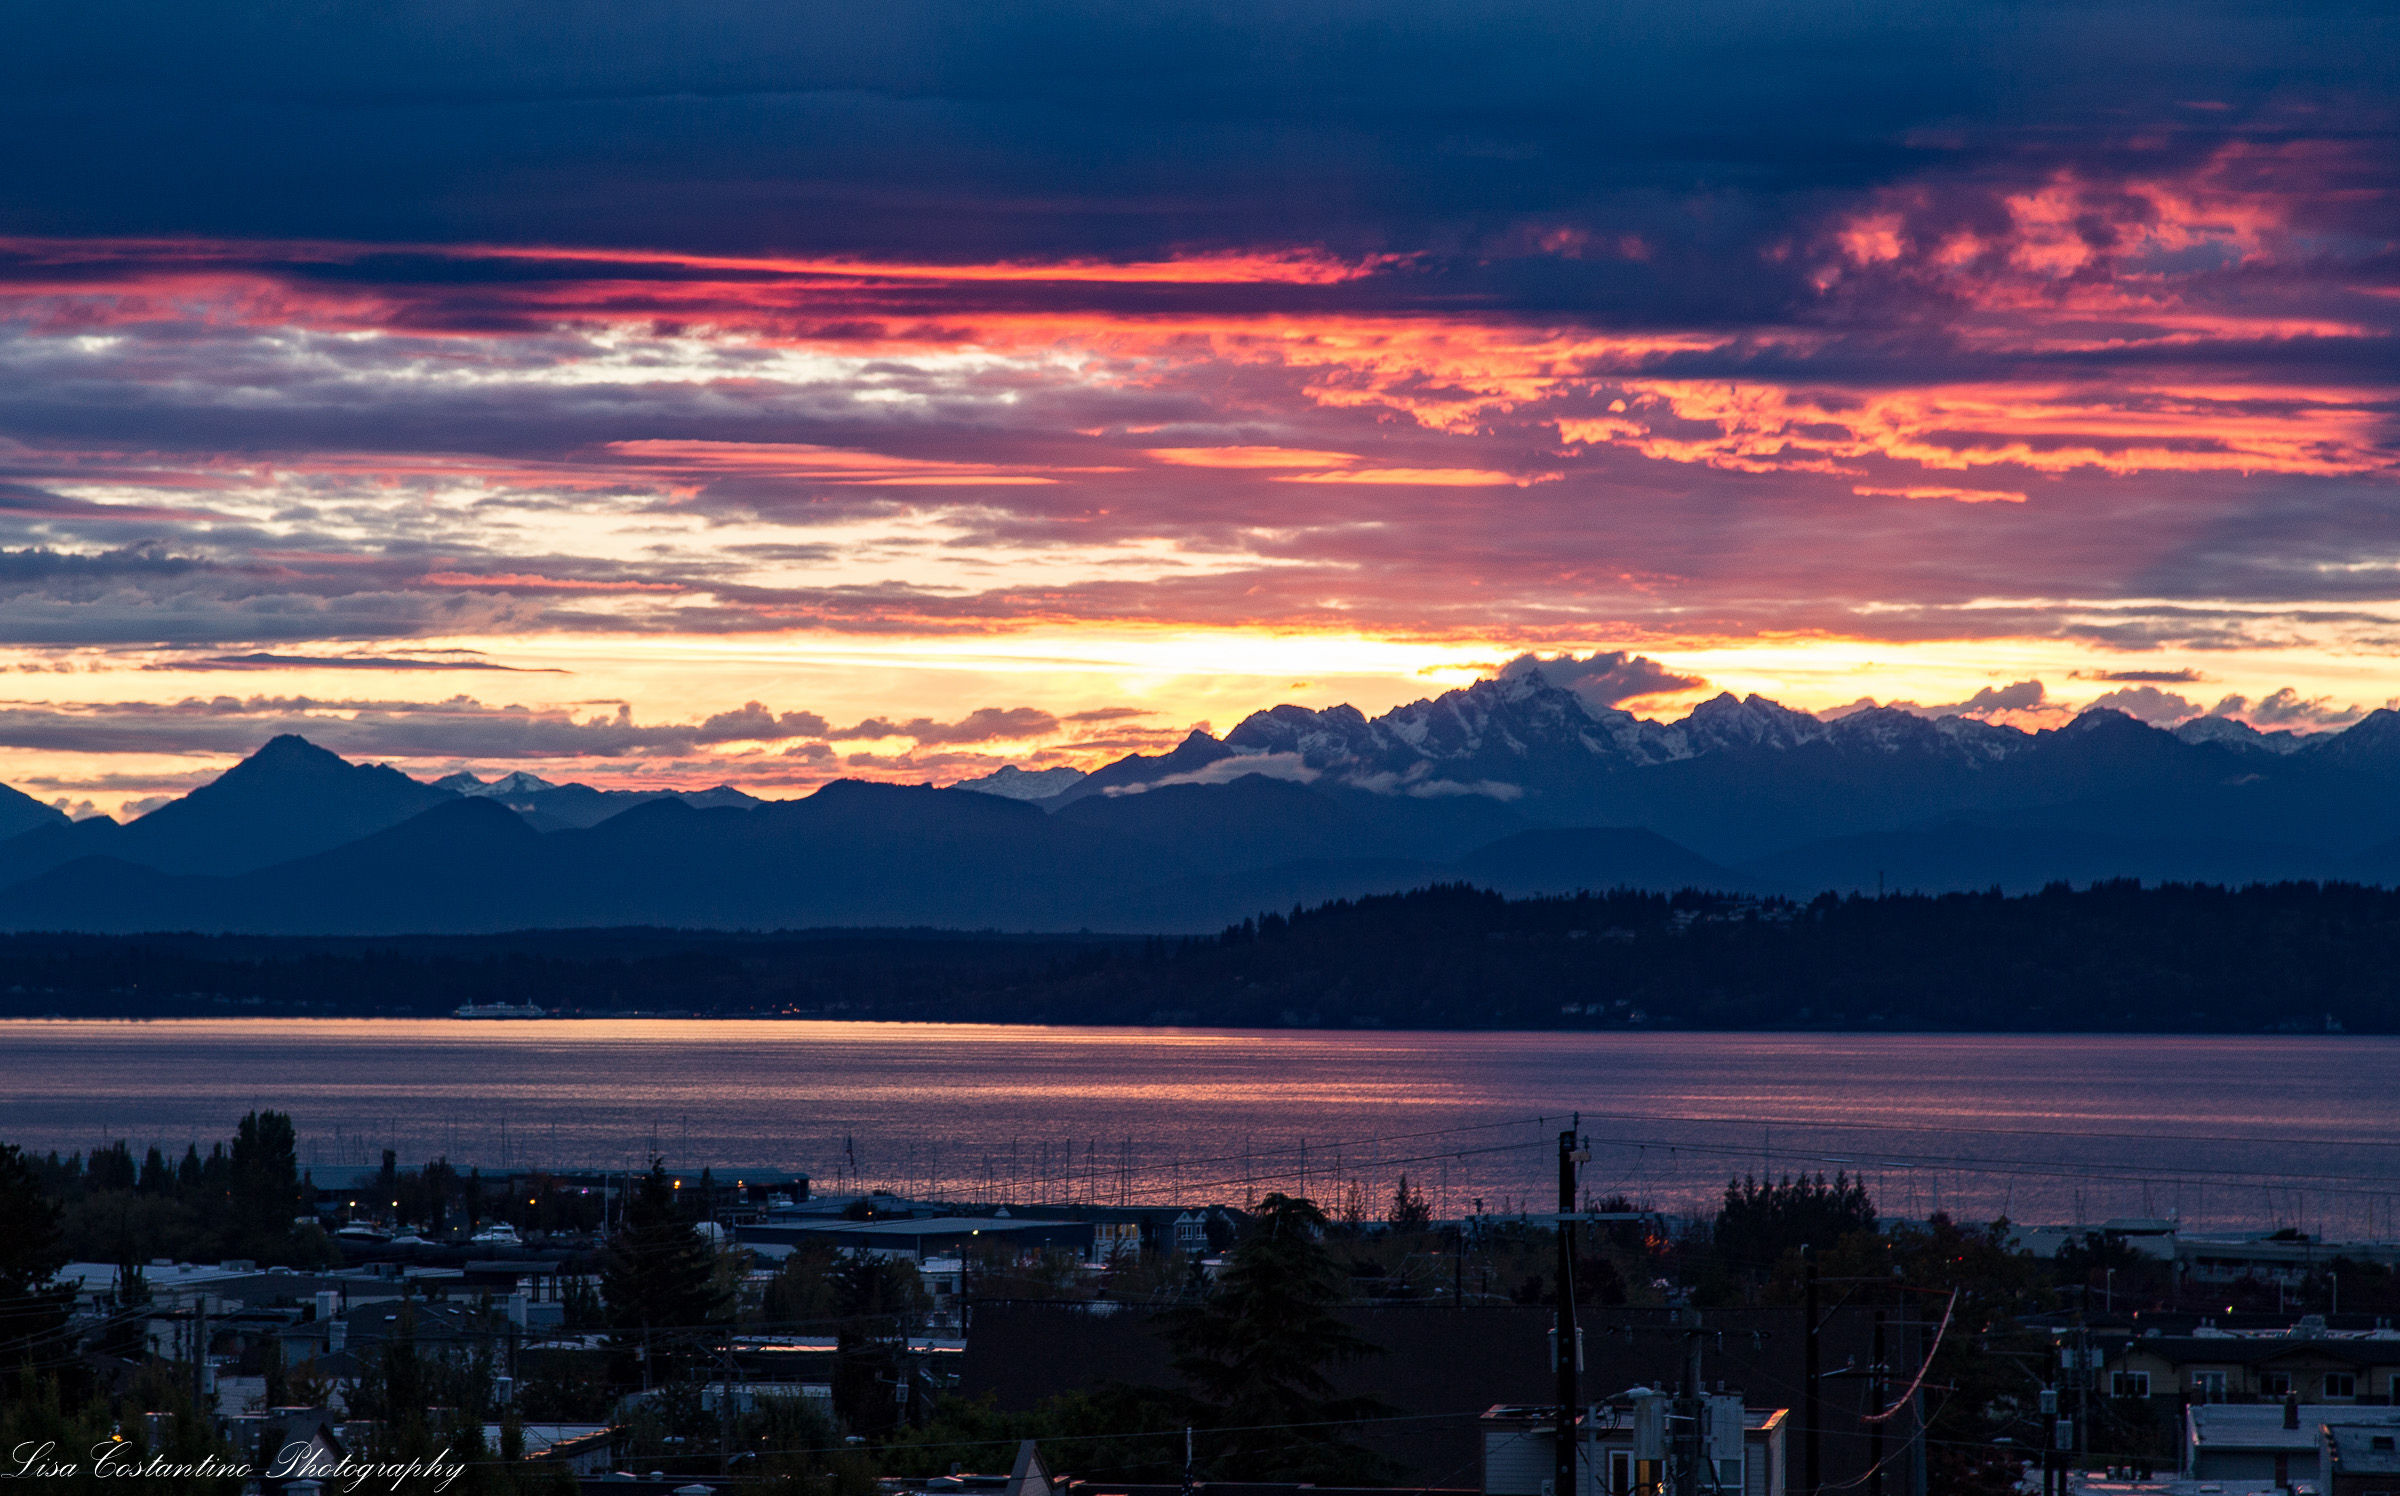 Last color over Edmonds